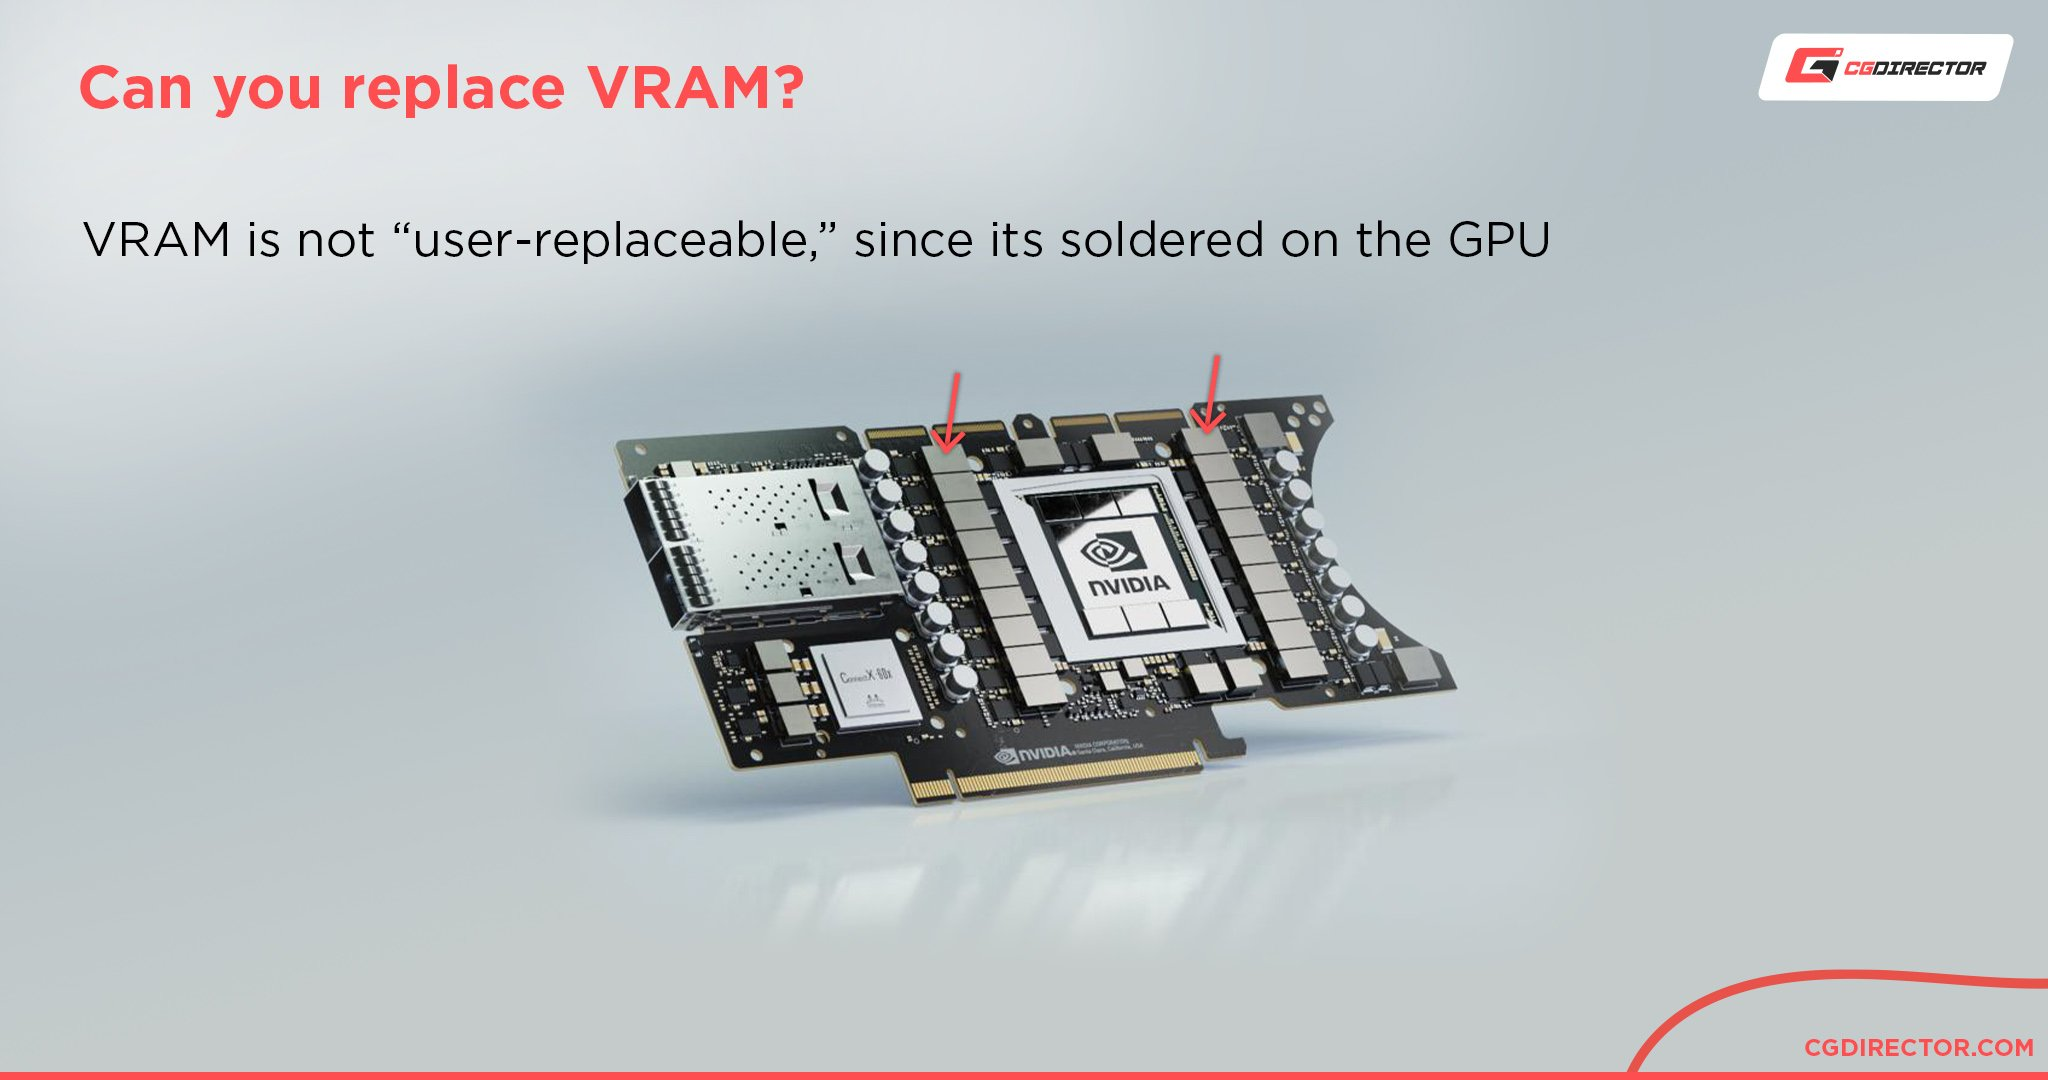 Can you replace VRAM